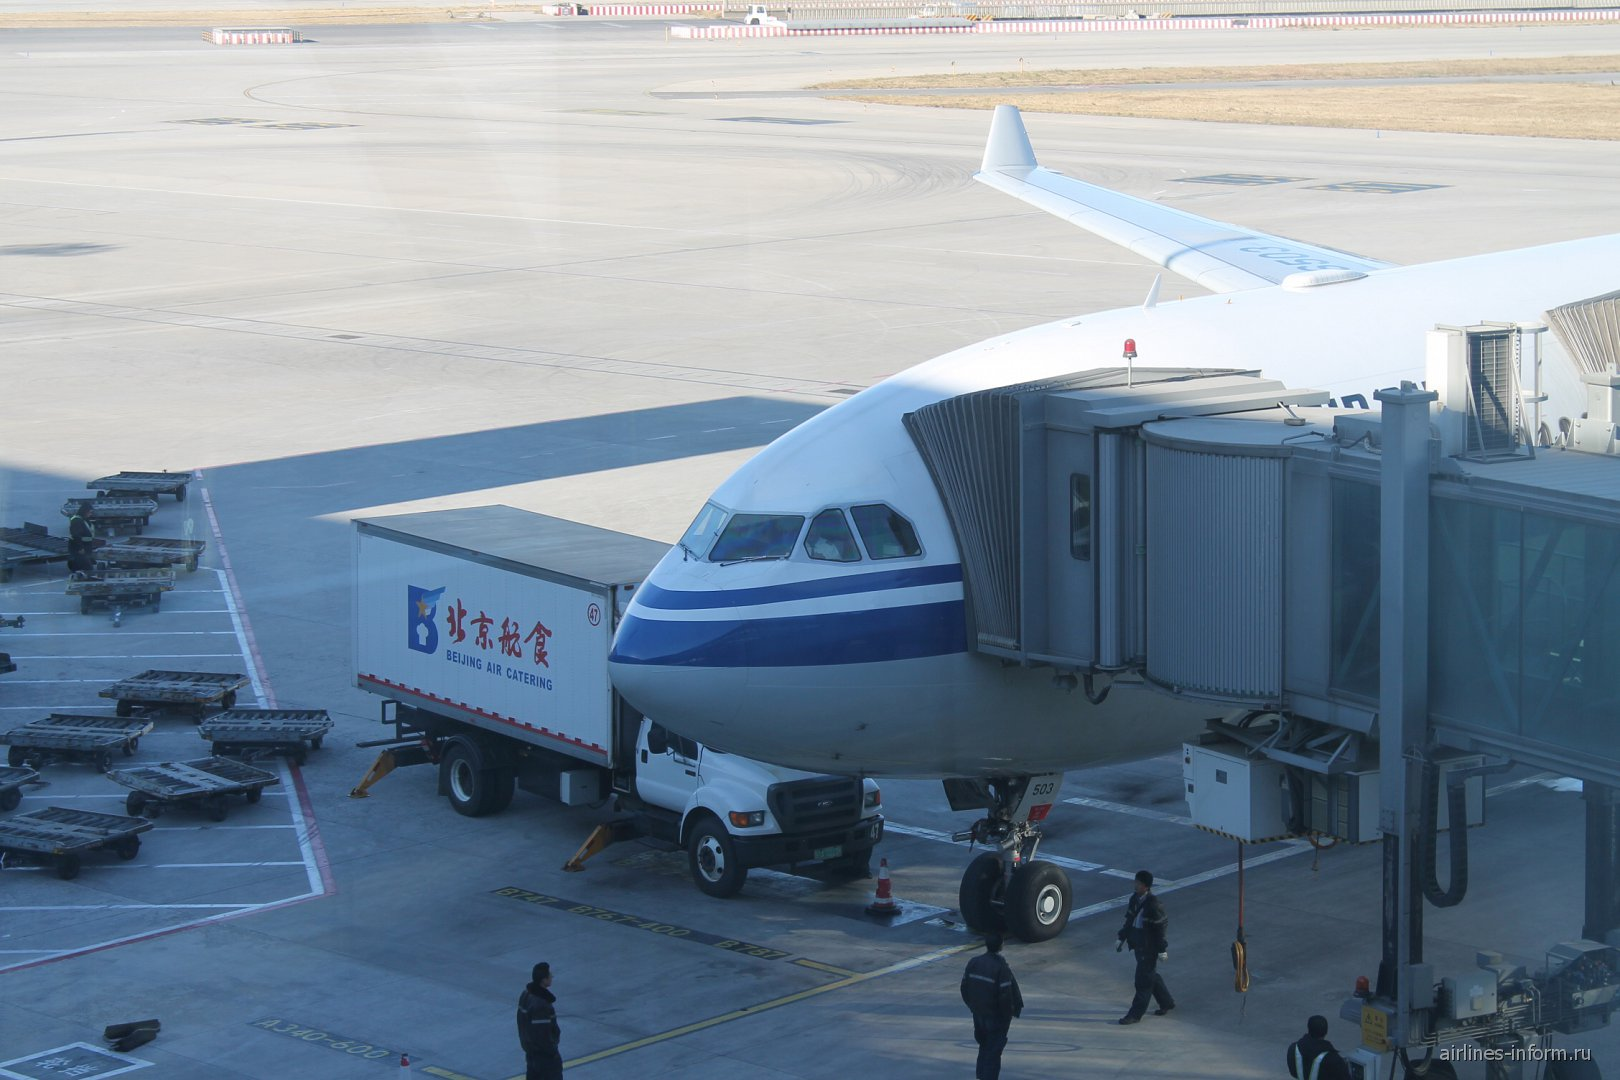 Air China: Stockholm- Beijing